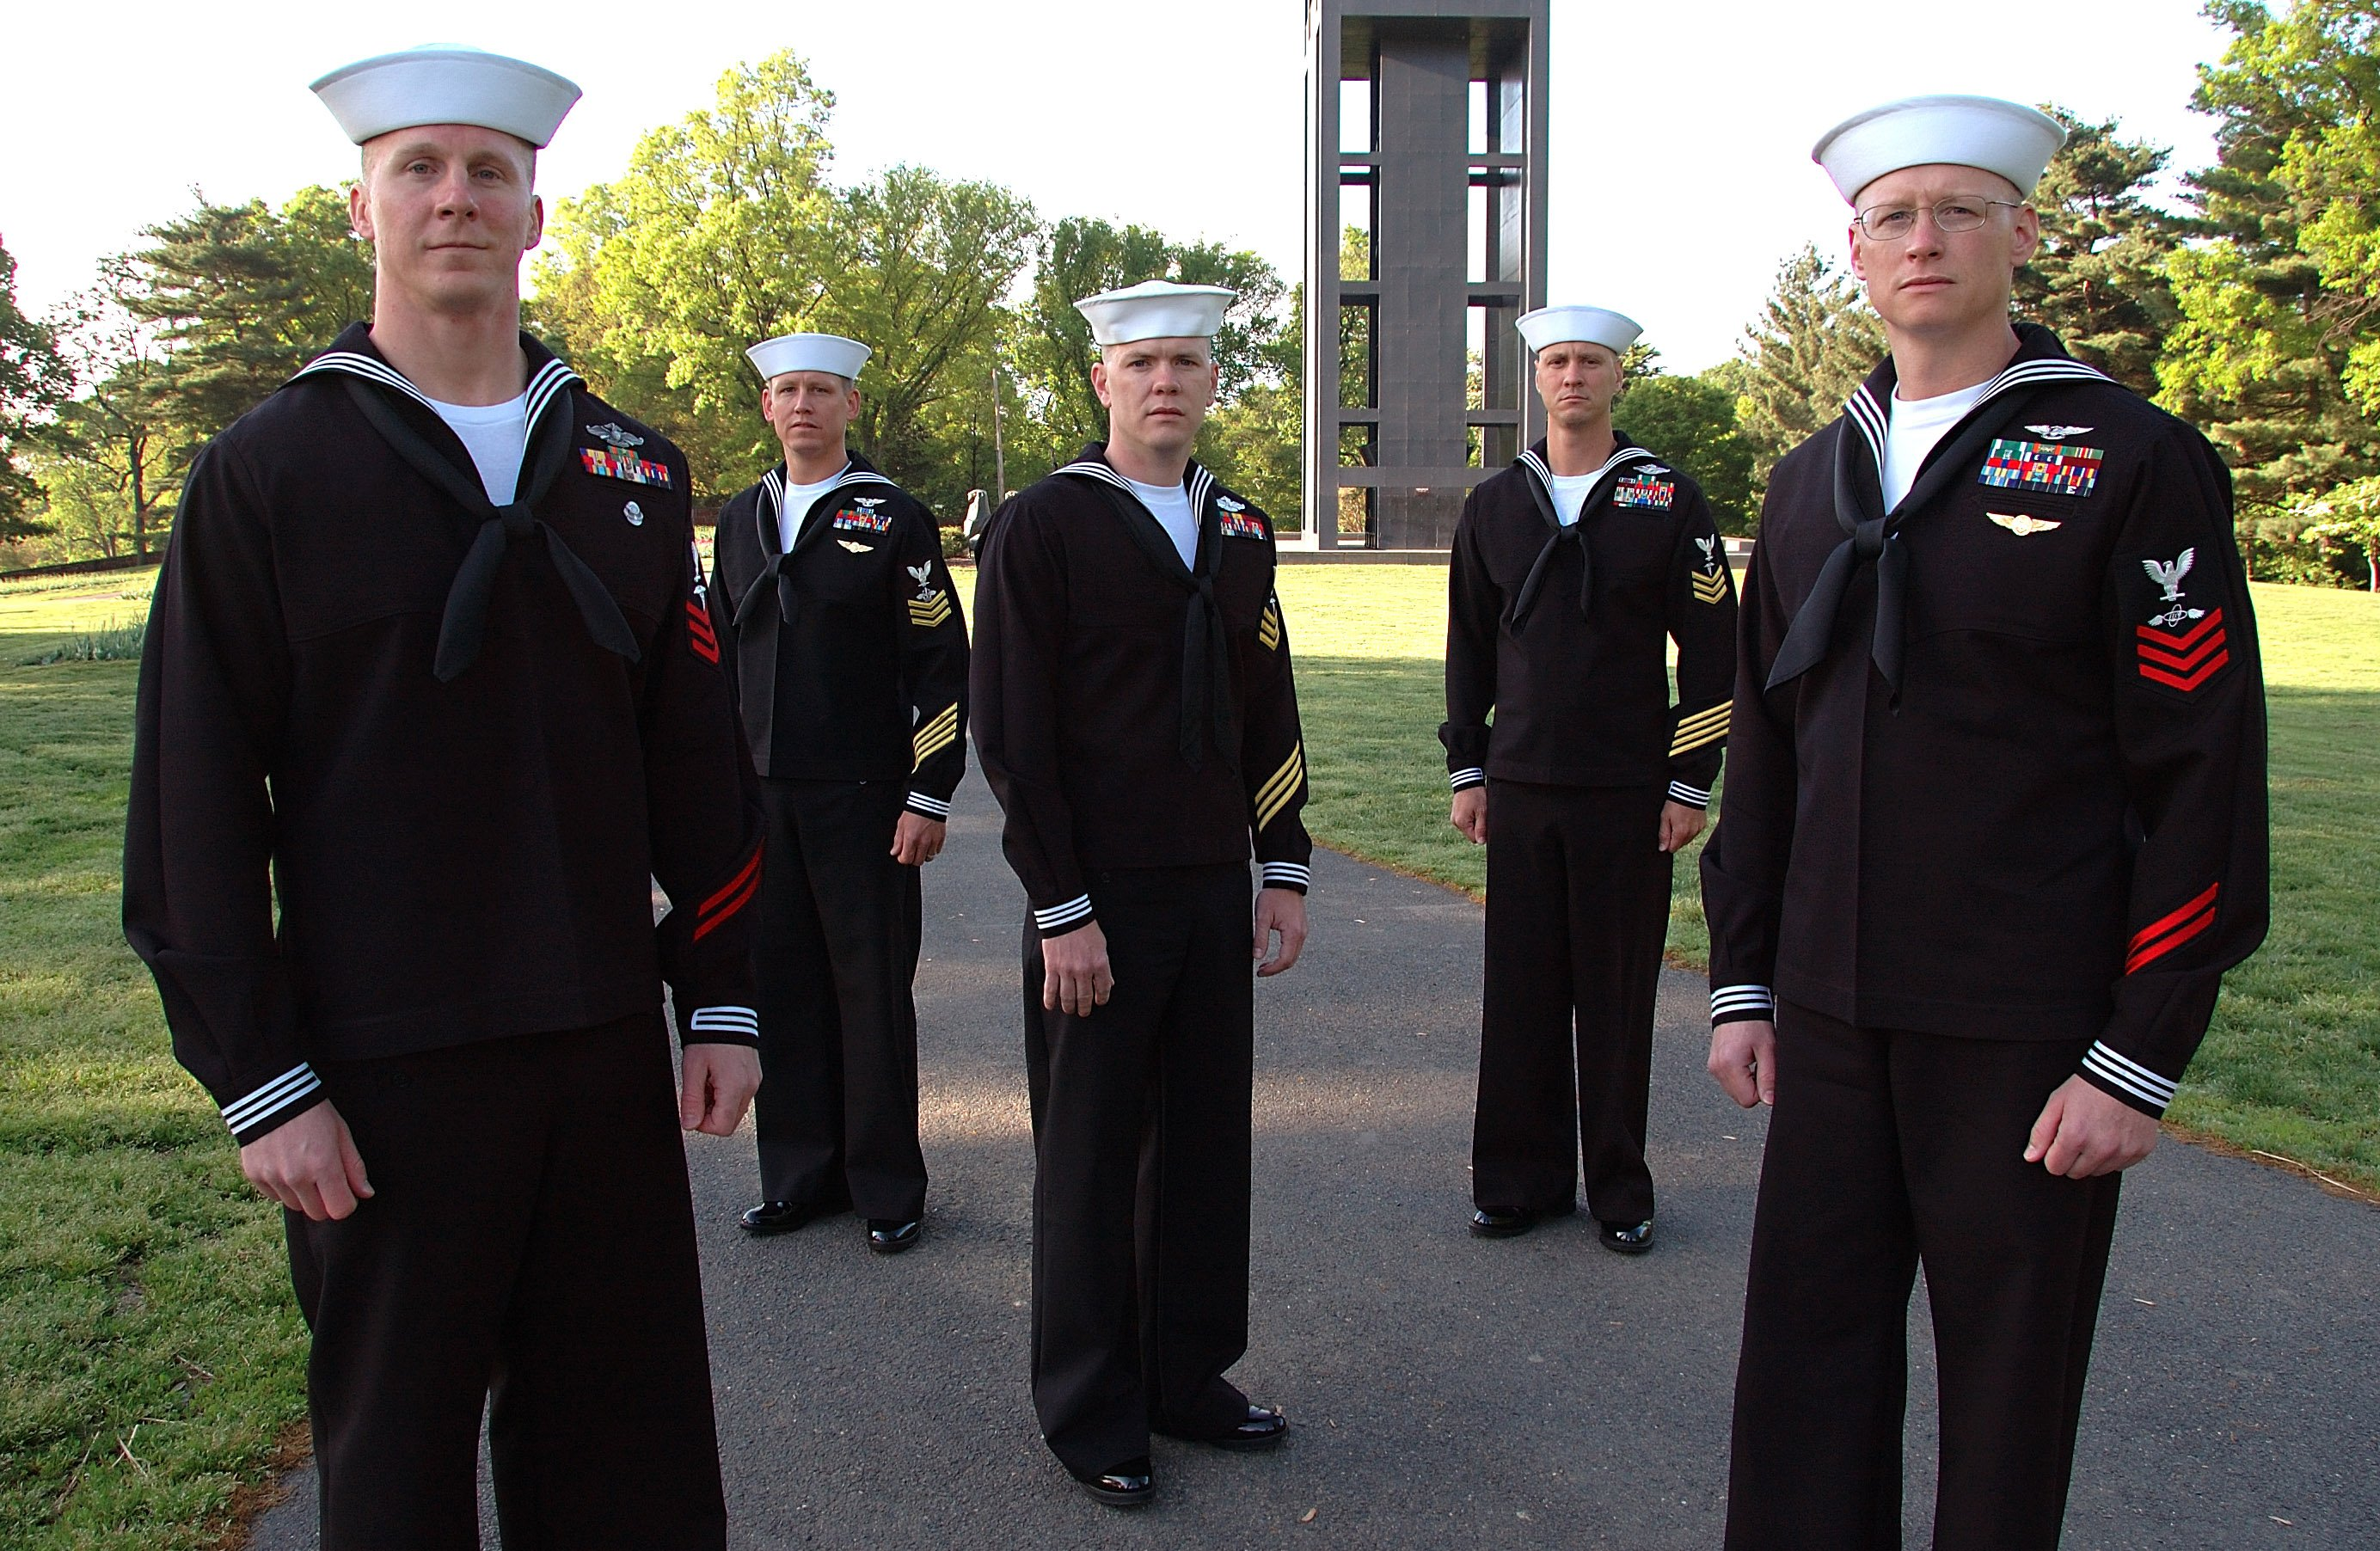 Five sailors in 2006. US Navy Photo